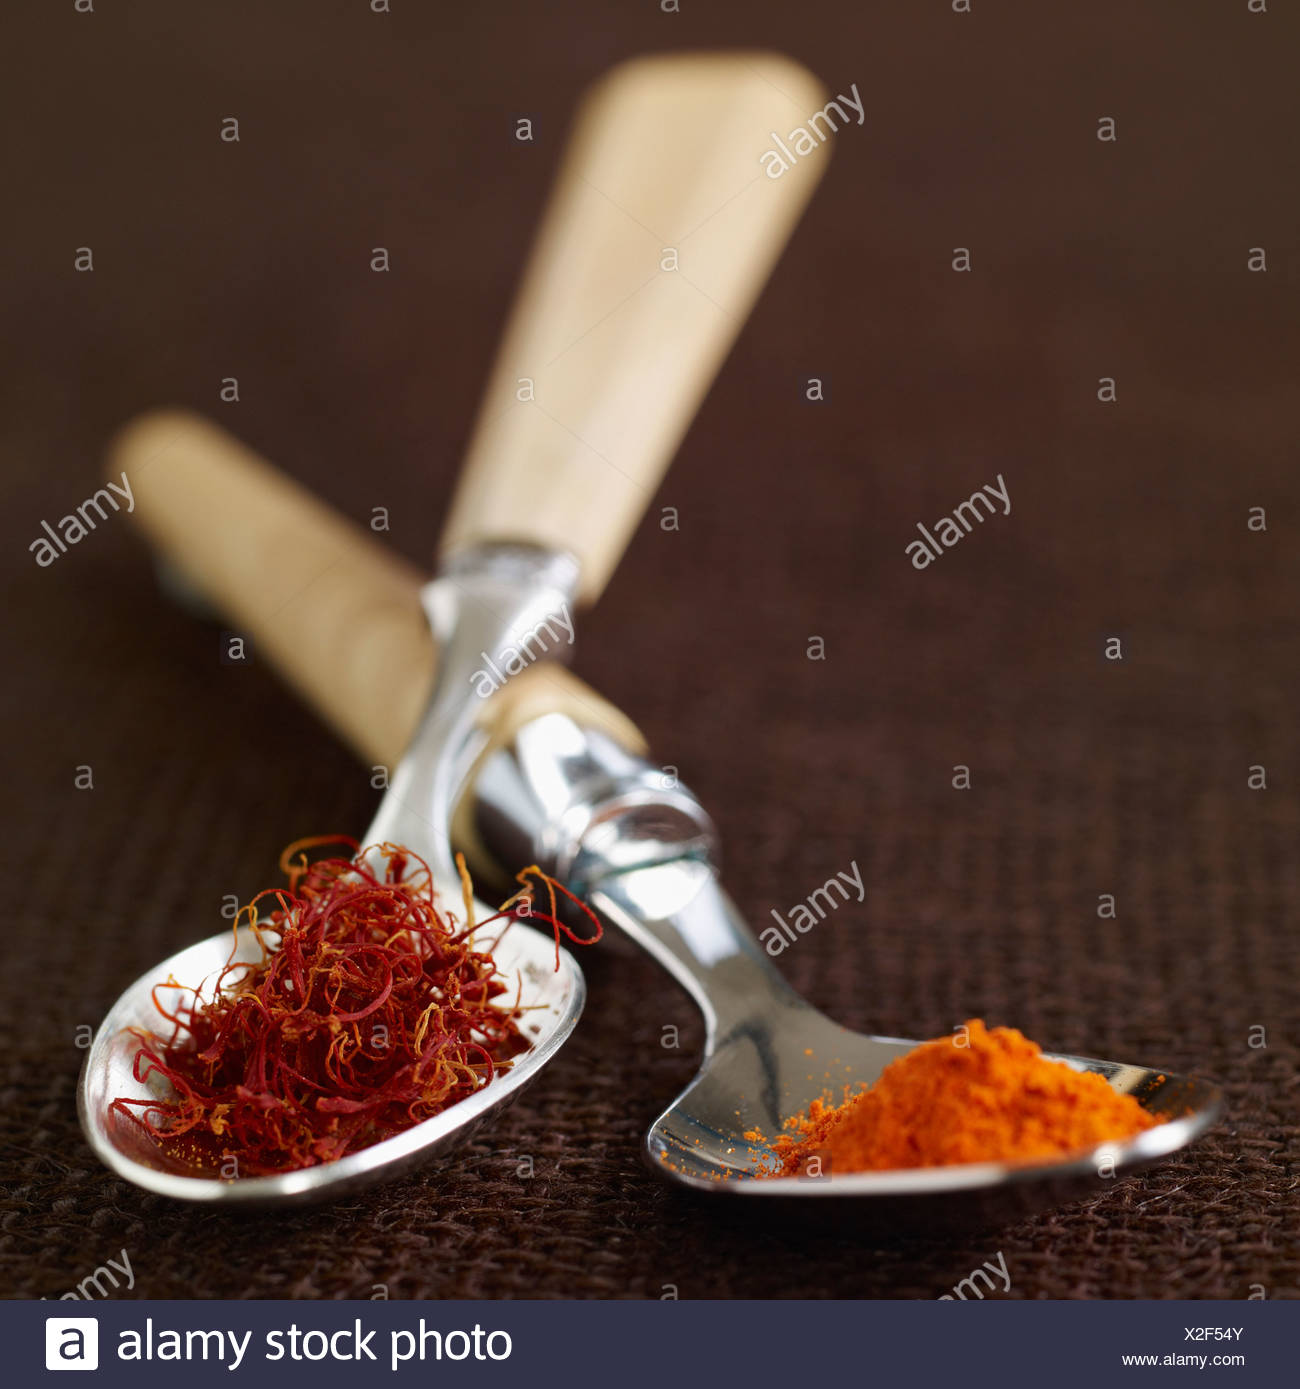 Spoonful of saffron threads and spoonful of saffron powder - Stock Image